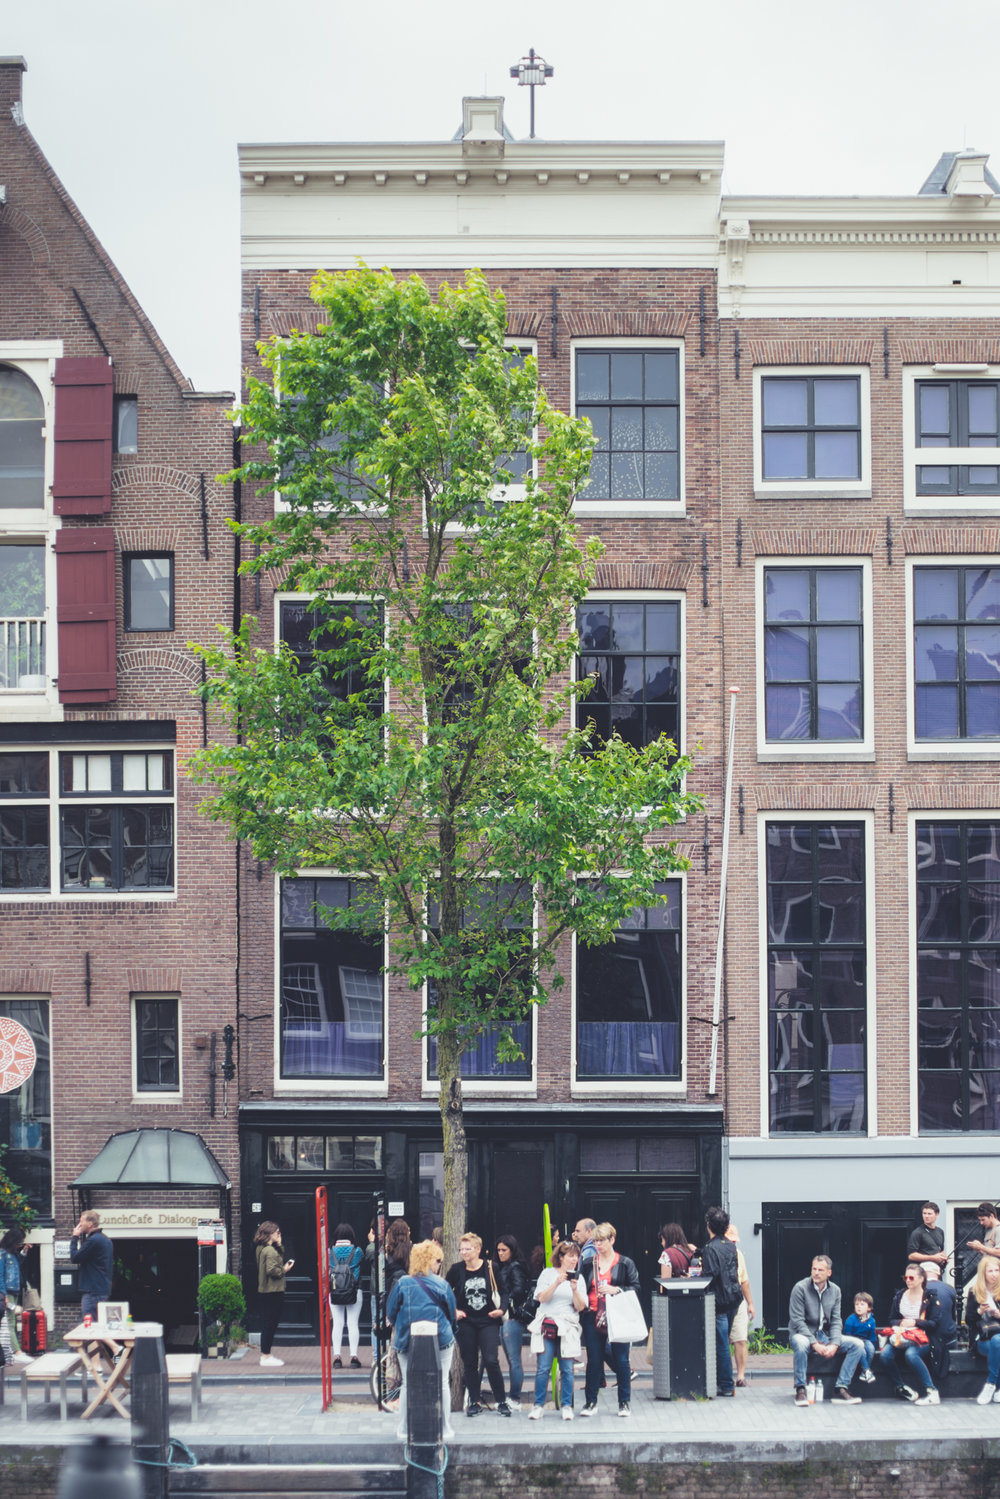 Prinsengracht 263 - The Anne Frank House